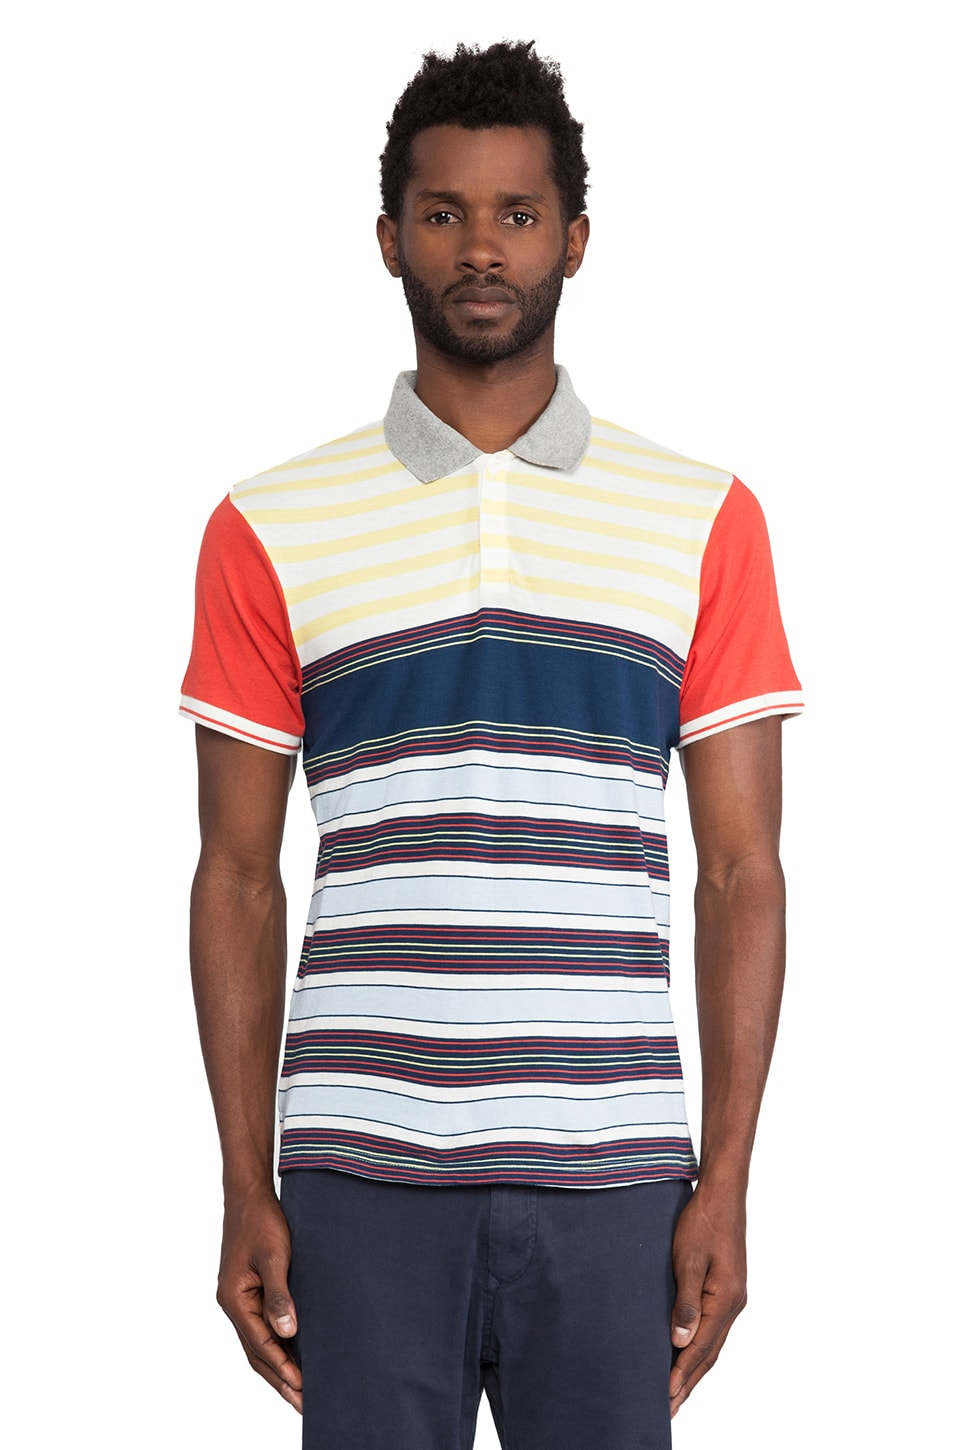 Burkman Bros. Striped Polo in Yellow & Blue